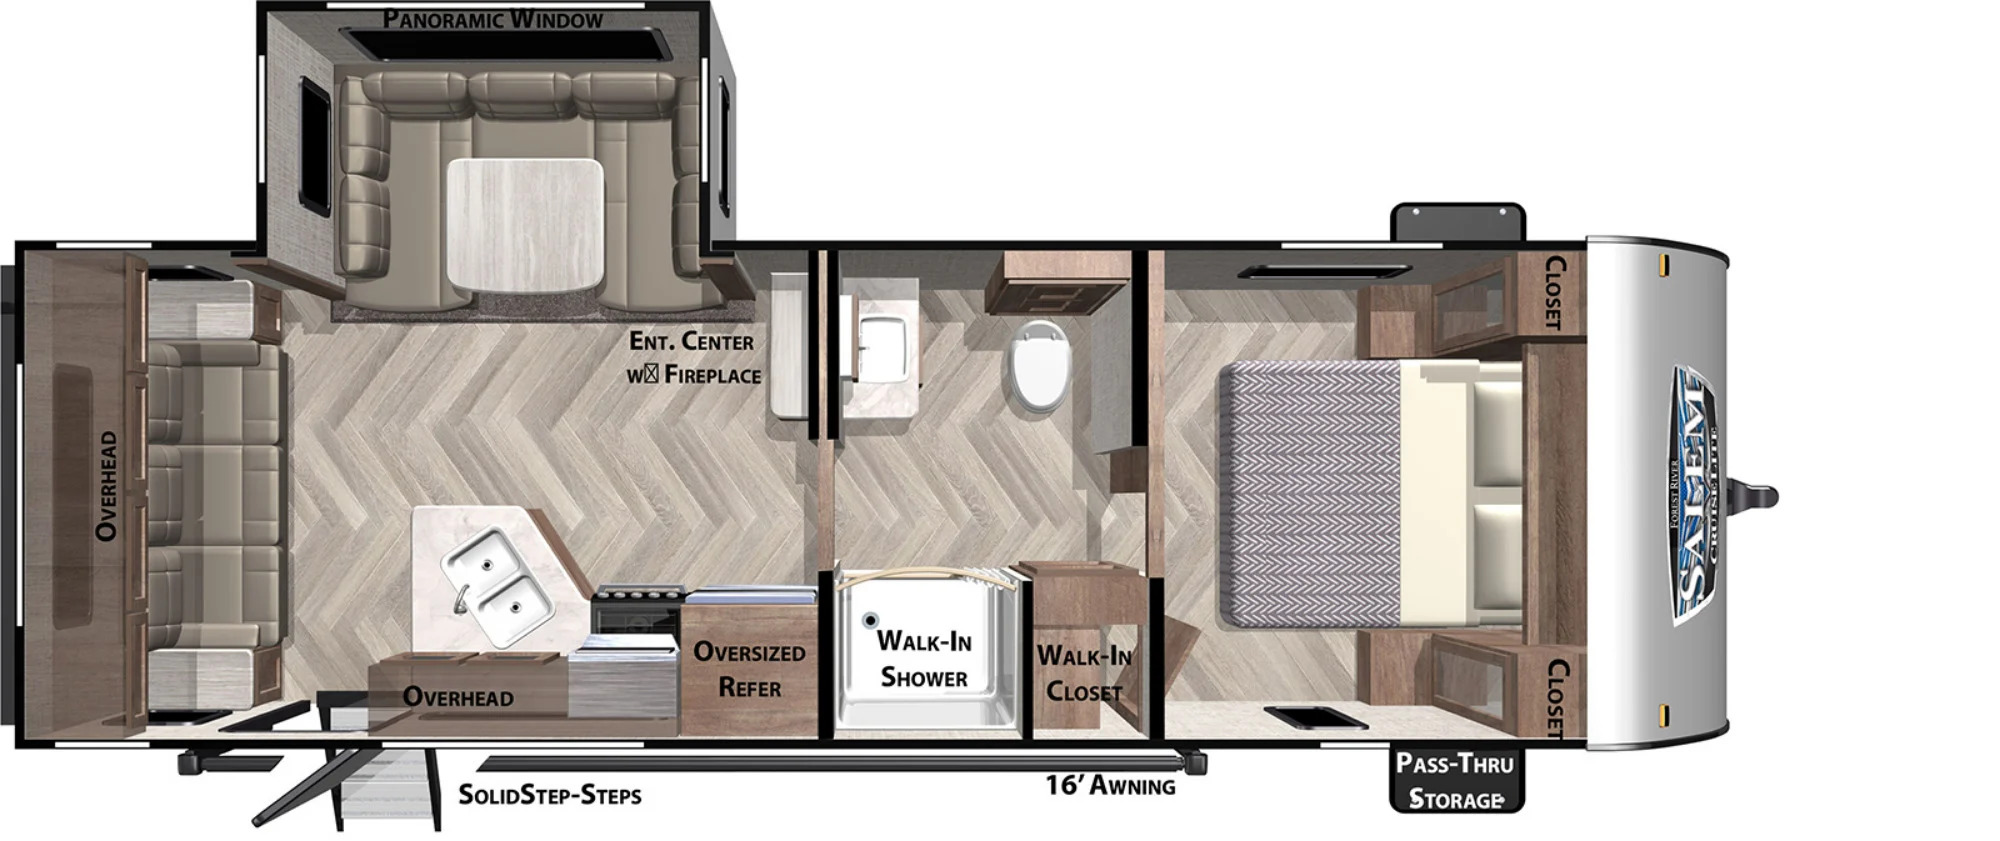 View Floor Plan for 2022 FOREST RIVER SALEM CRUISE LITE 24RLXL